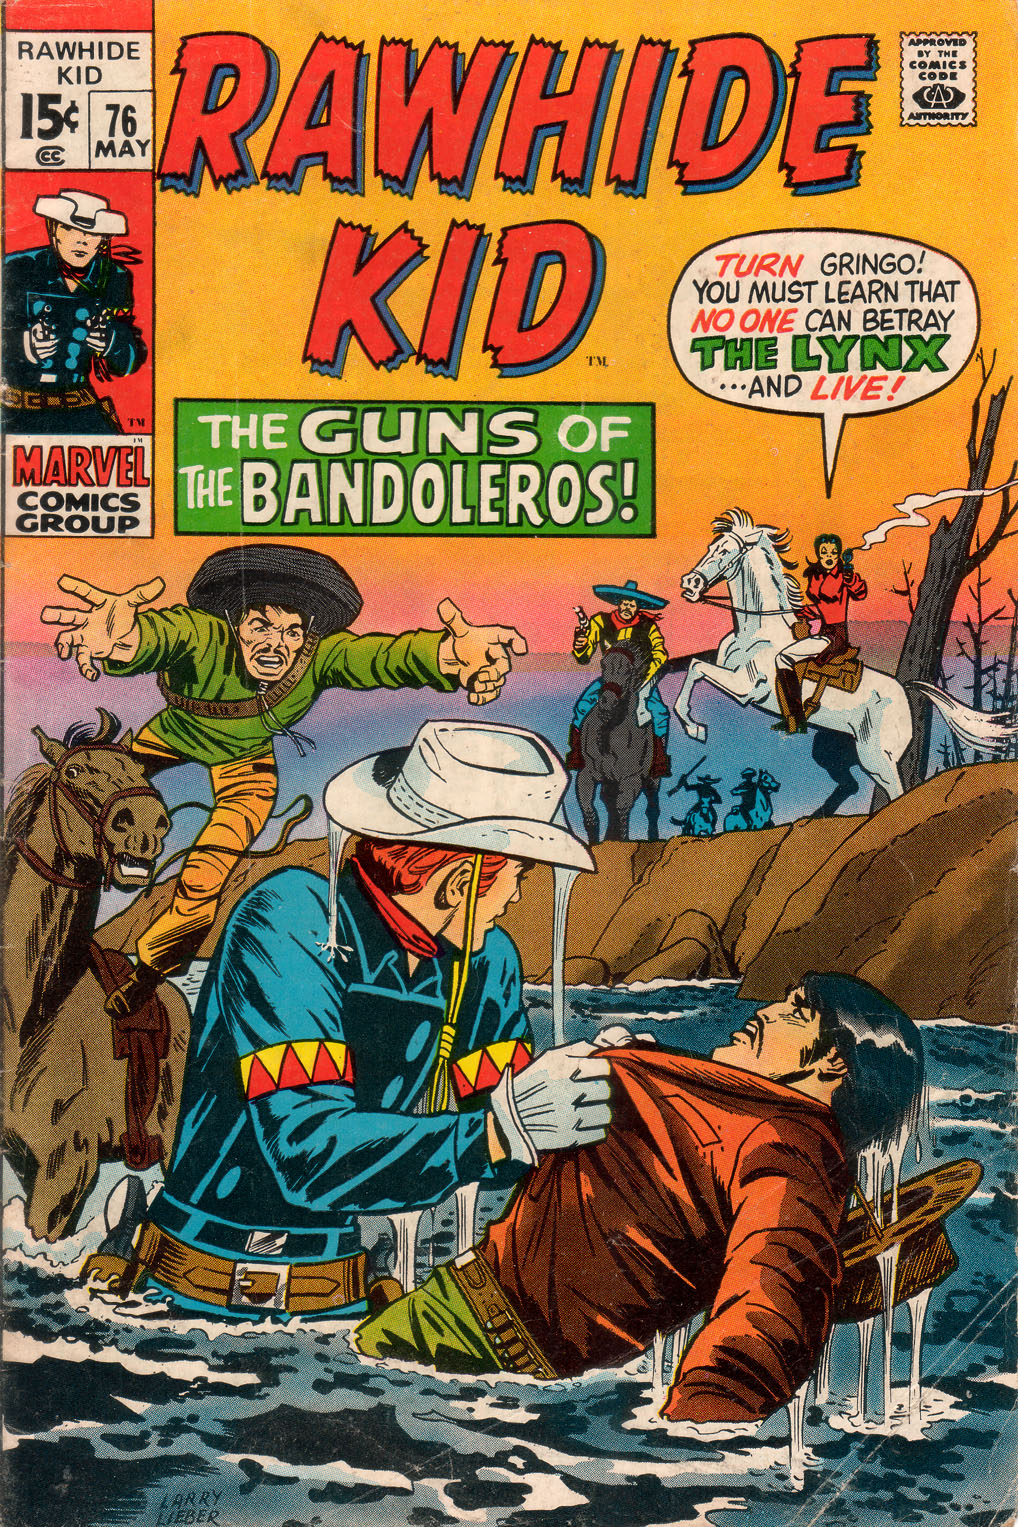 The Rawhide Kid (1955) 76 Page 1